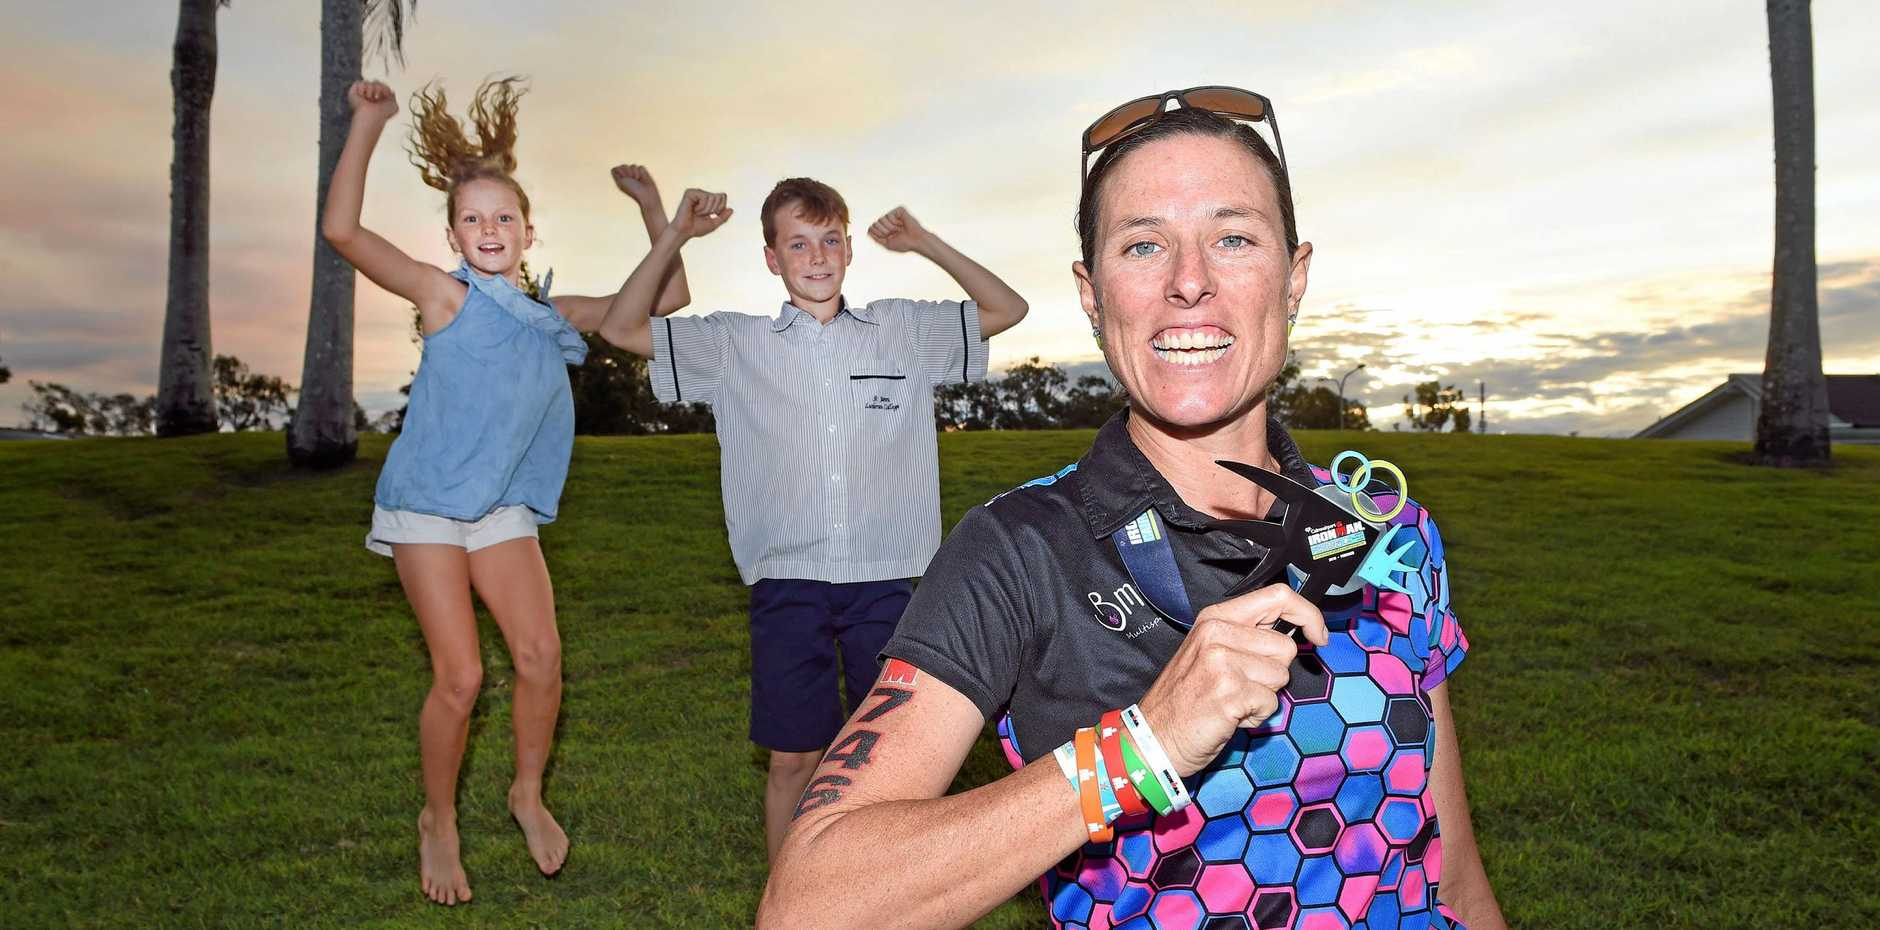 MISSION ACCOMPLISHED: Hervey Bay's Katrina Tate had the full support of her children Tilly, 10, and Link, 12, completing her first Ironwoman event in Cairns at the weekend.